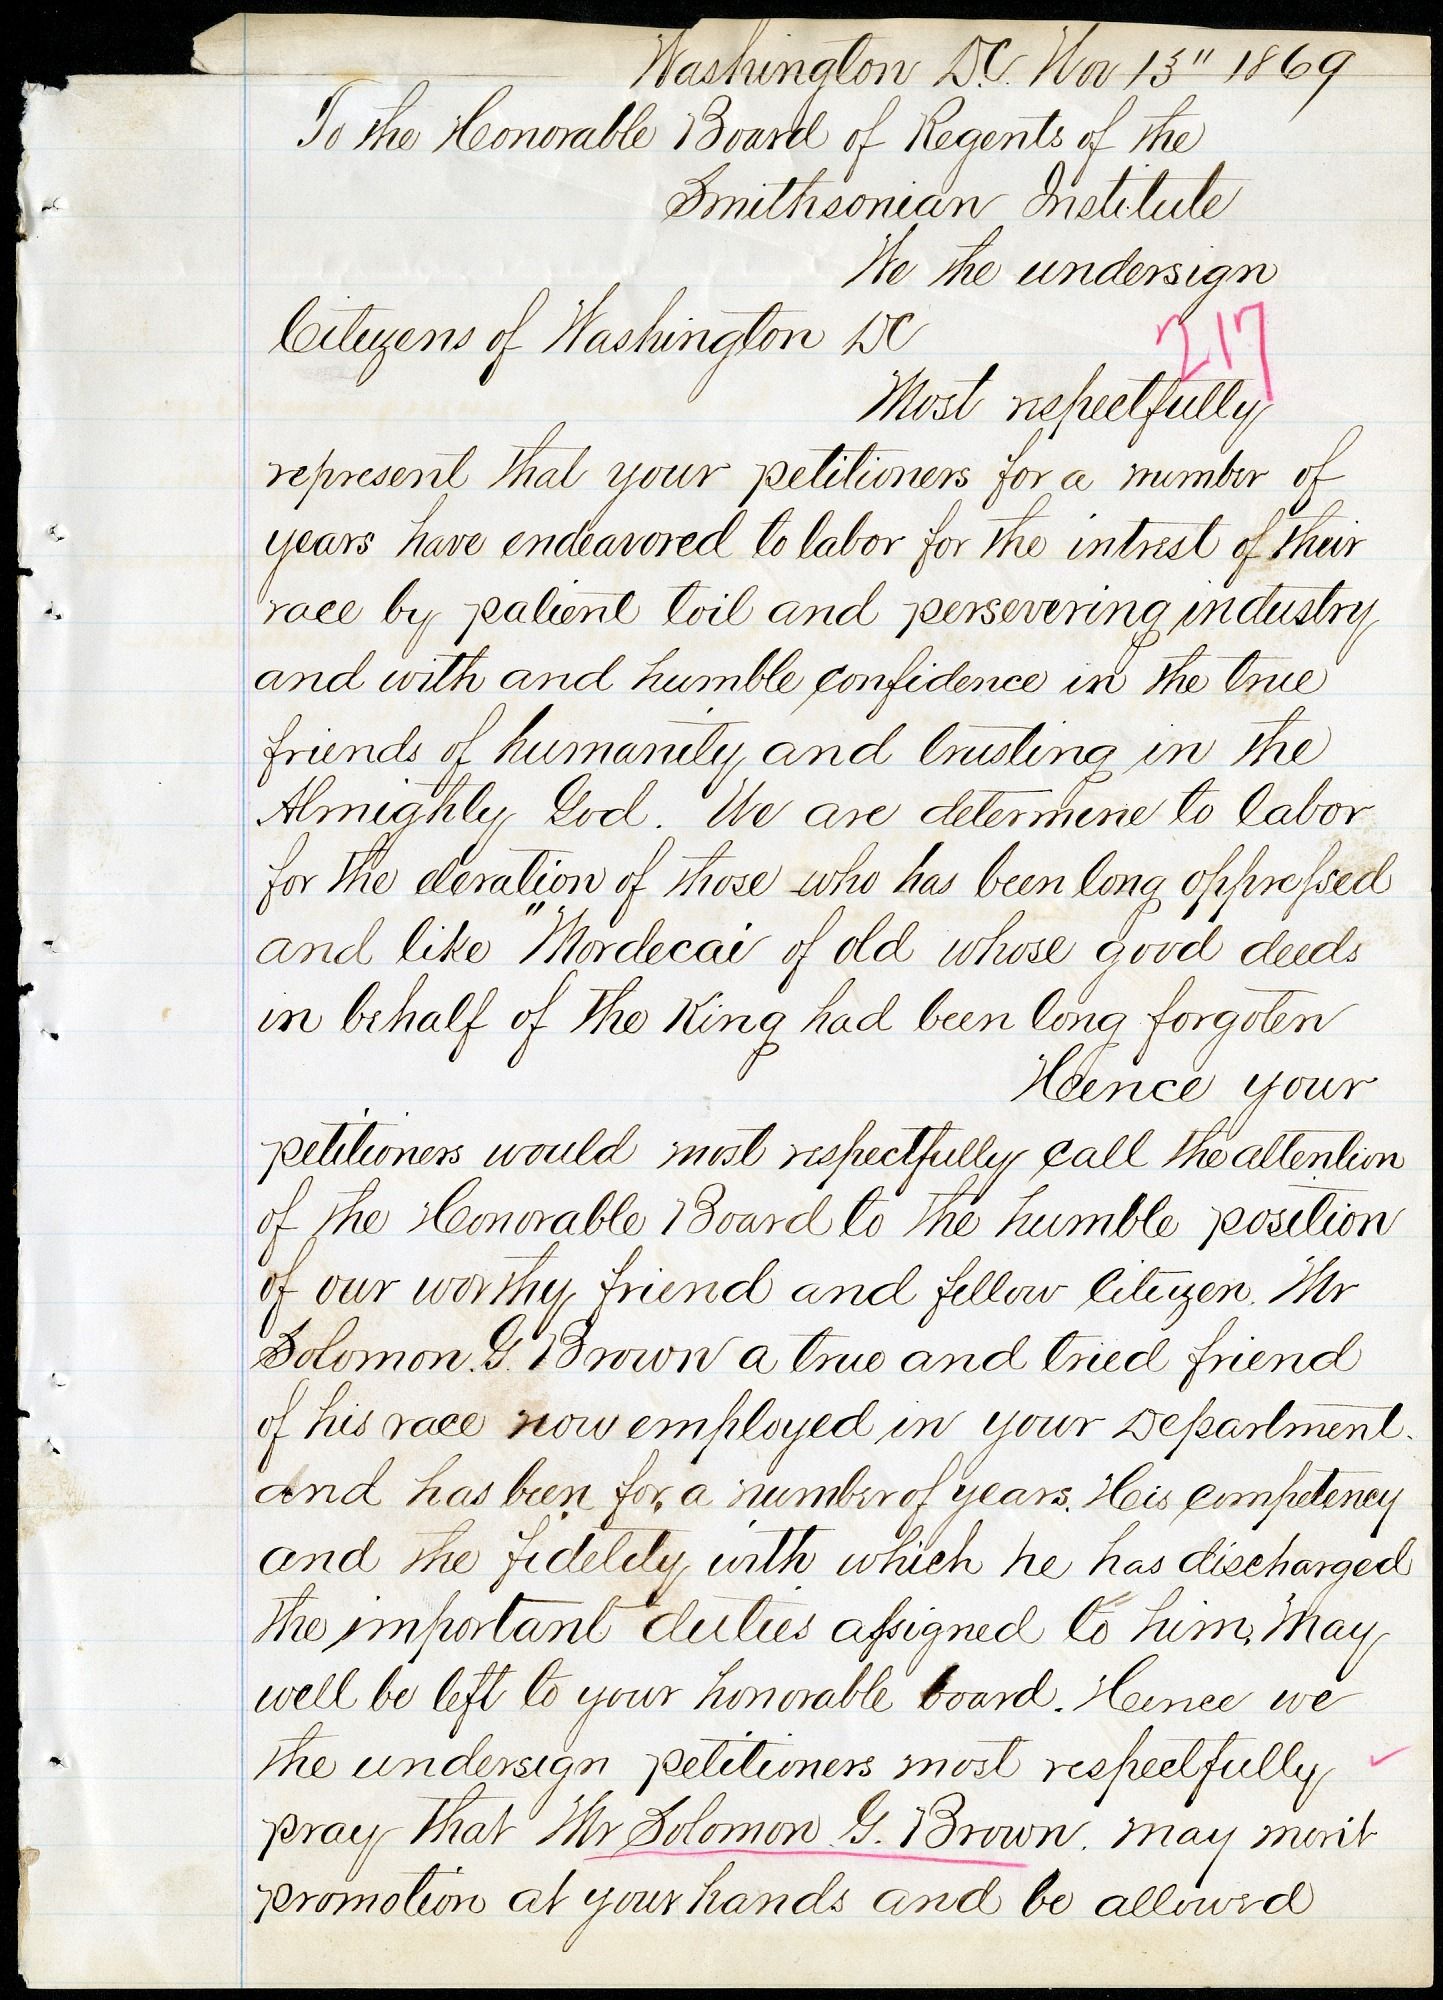 Petition to Board of Regents, 11/13/1869